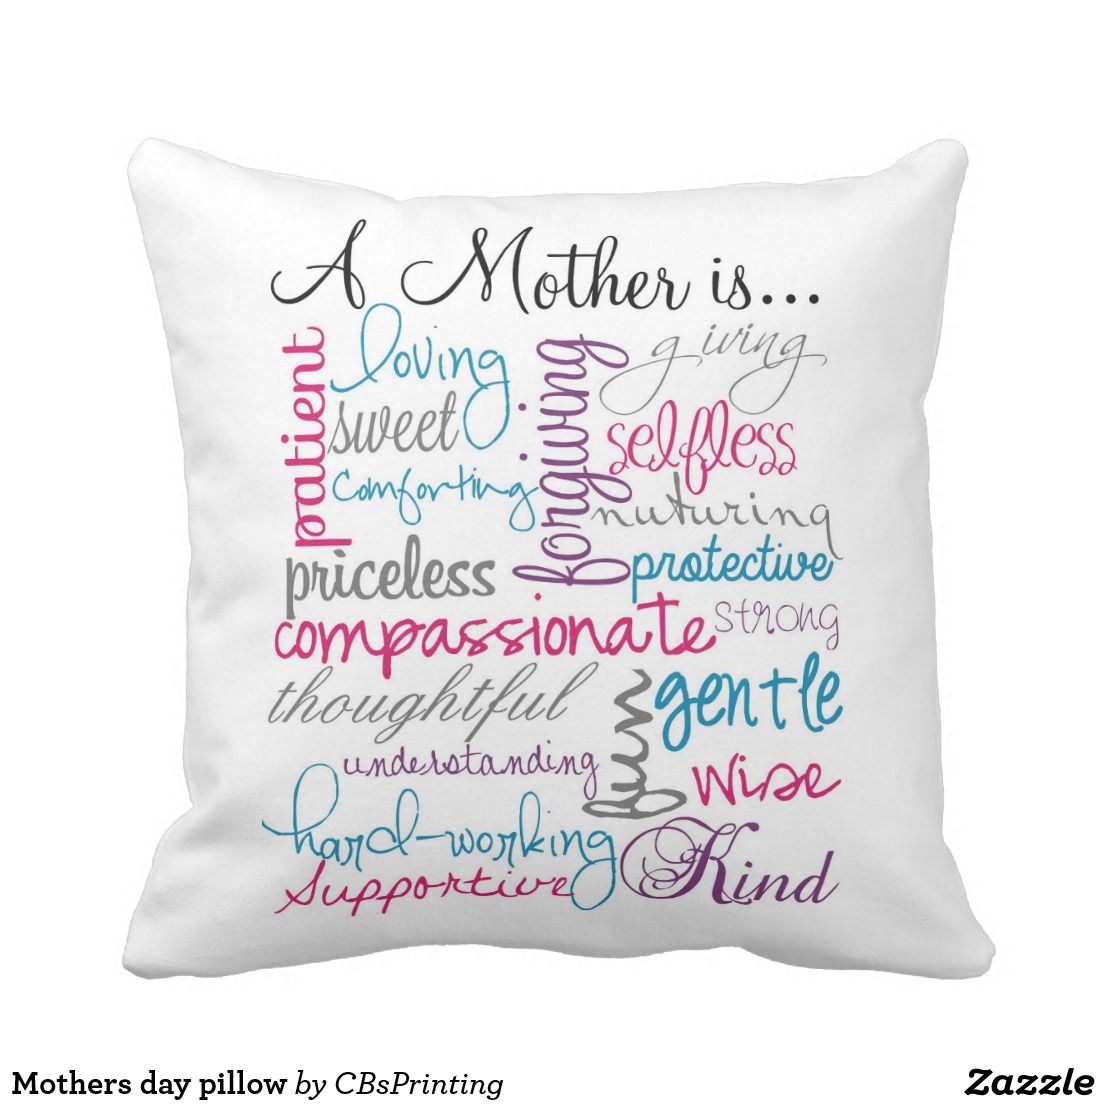 Mothers day pillow | Pillows